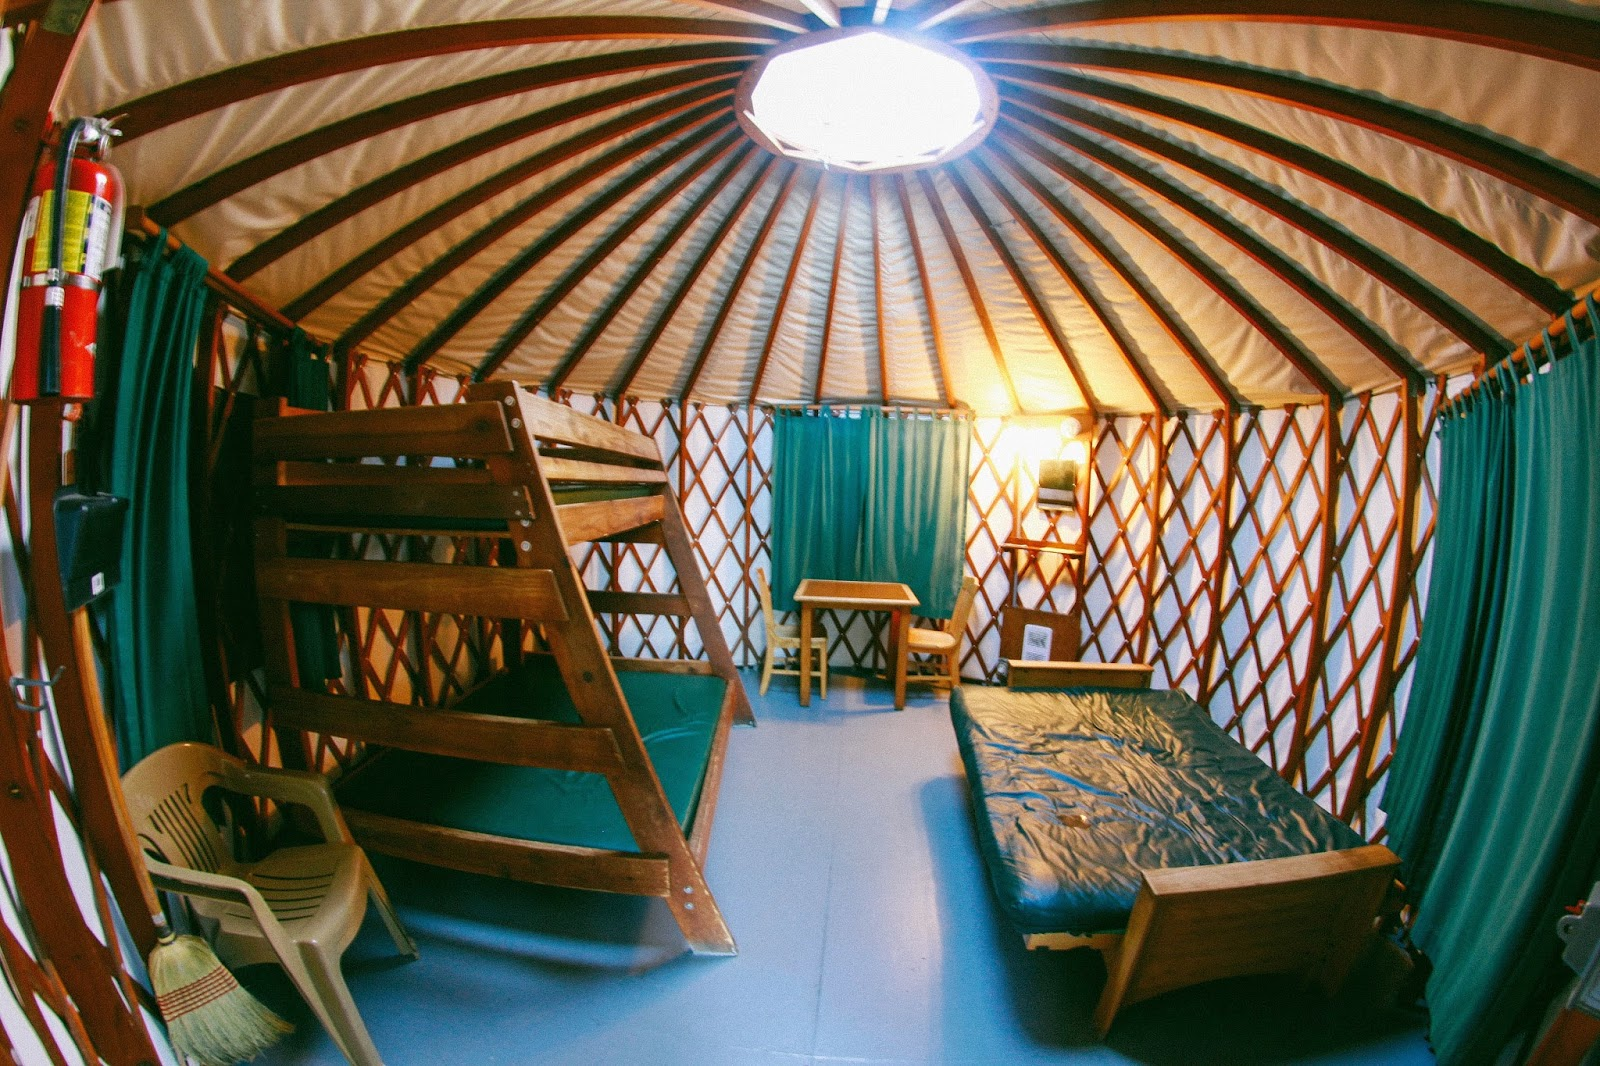 South beach yurts oregon whozwho live for Oregon state parks yurts and cabins